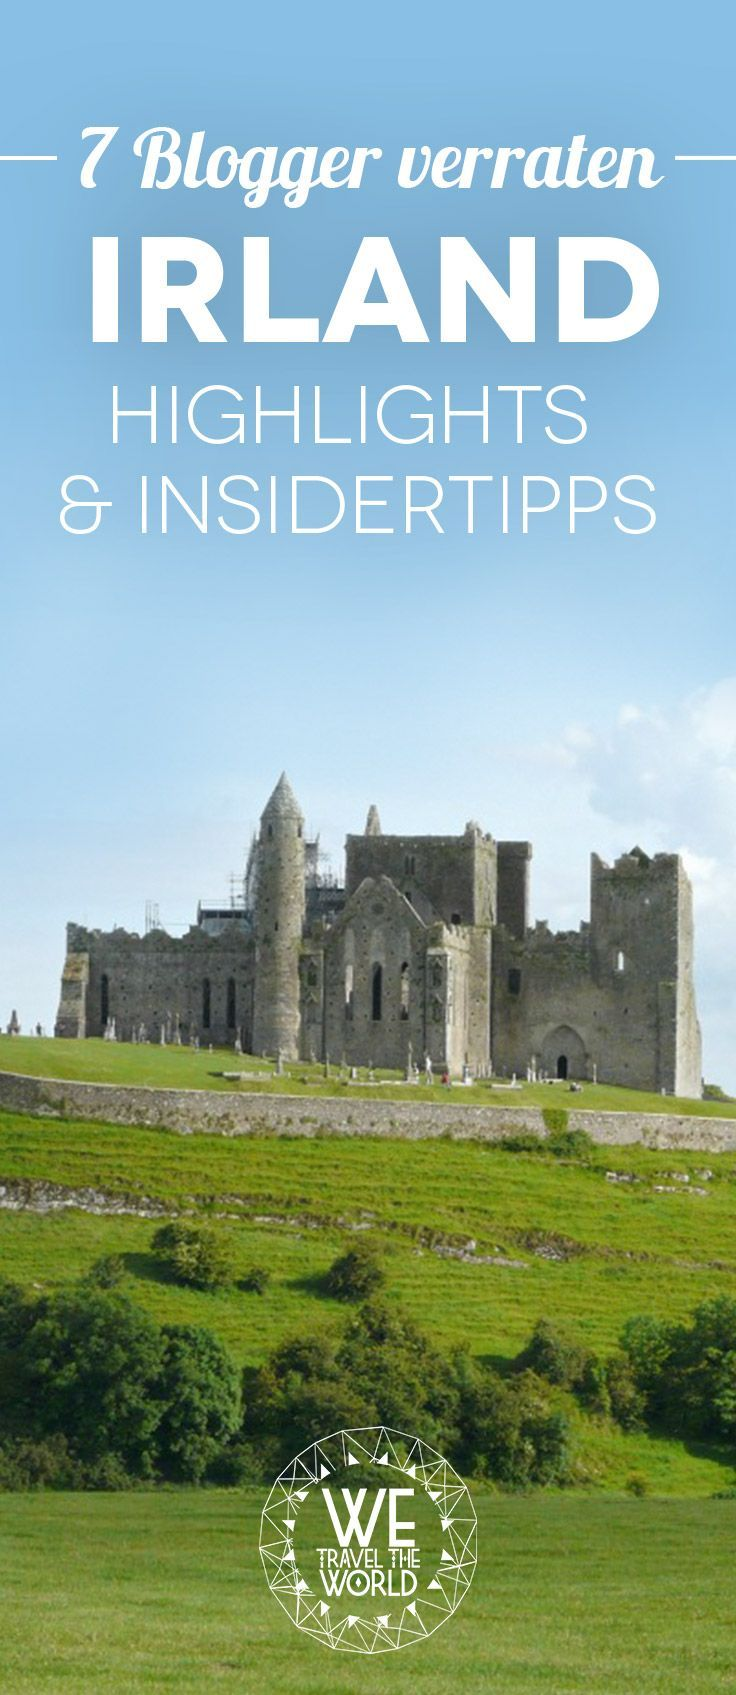 Irland 7 Blogger Verraten Grossartige Insider Tipps Highlights